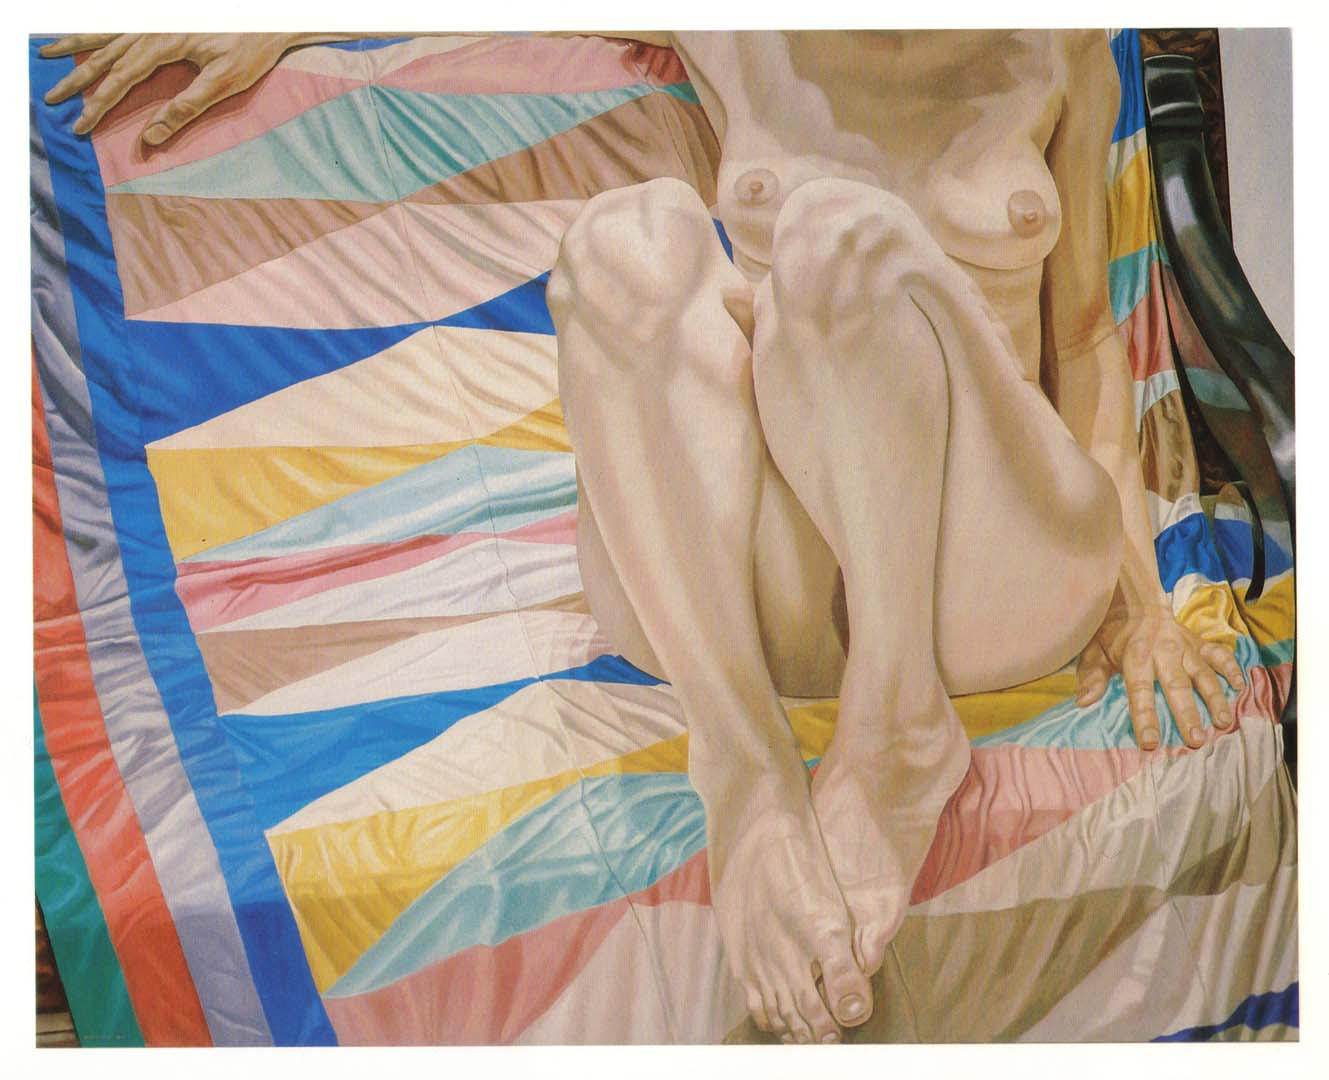 1977 Female Model on Lozenge Patterned Drape Oil on Canvas 48 x 60